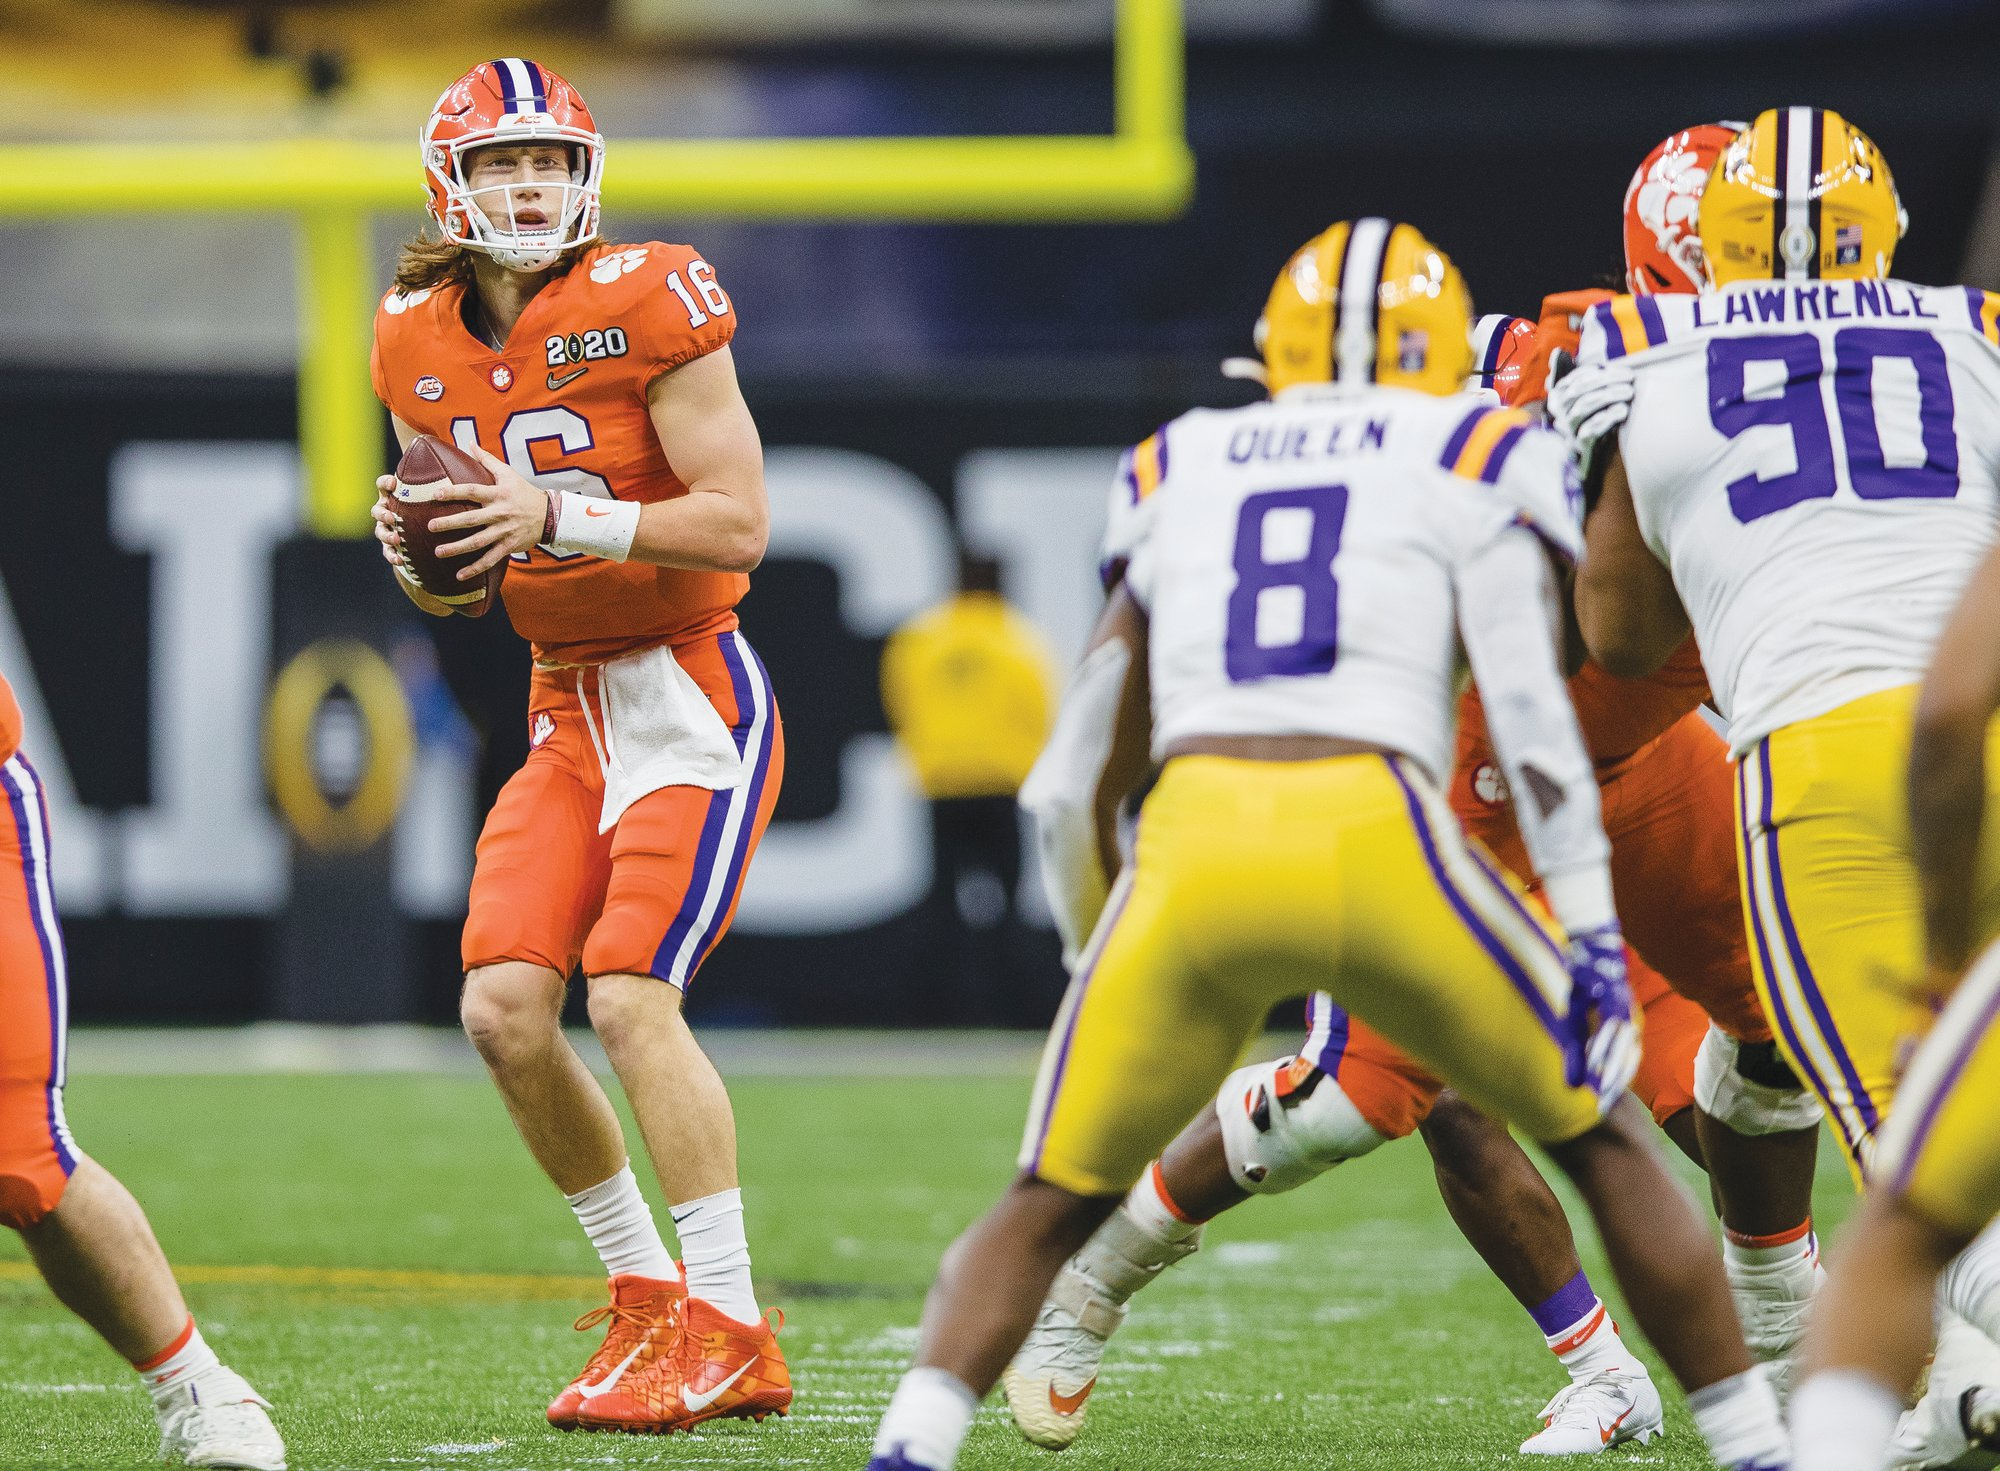 Clemson quarterback Trevor Lawerence (16) is a preseason All-American this year, along with Tiger running back Travis Etienne.